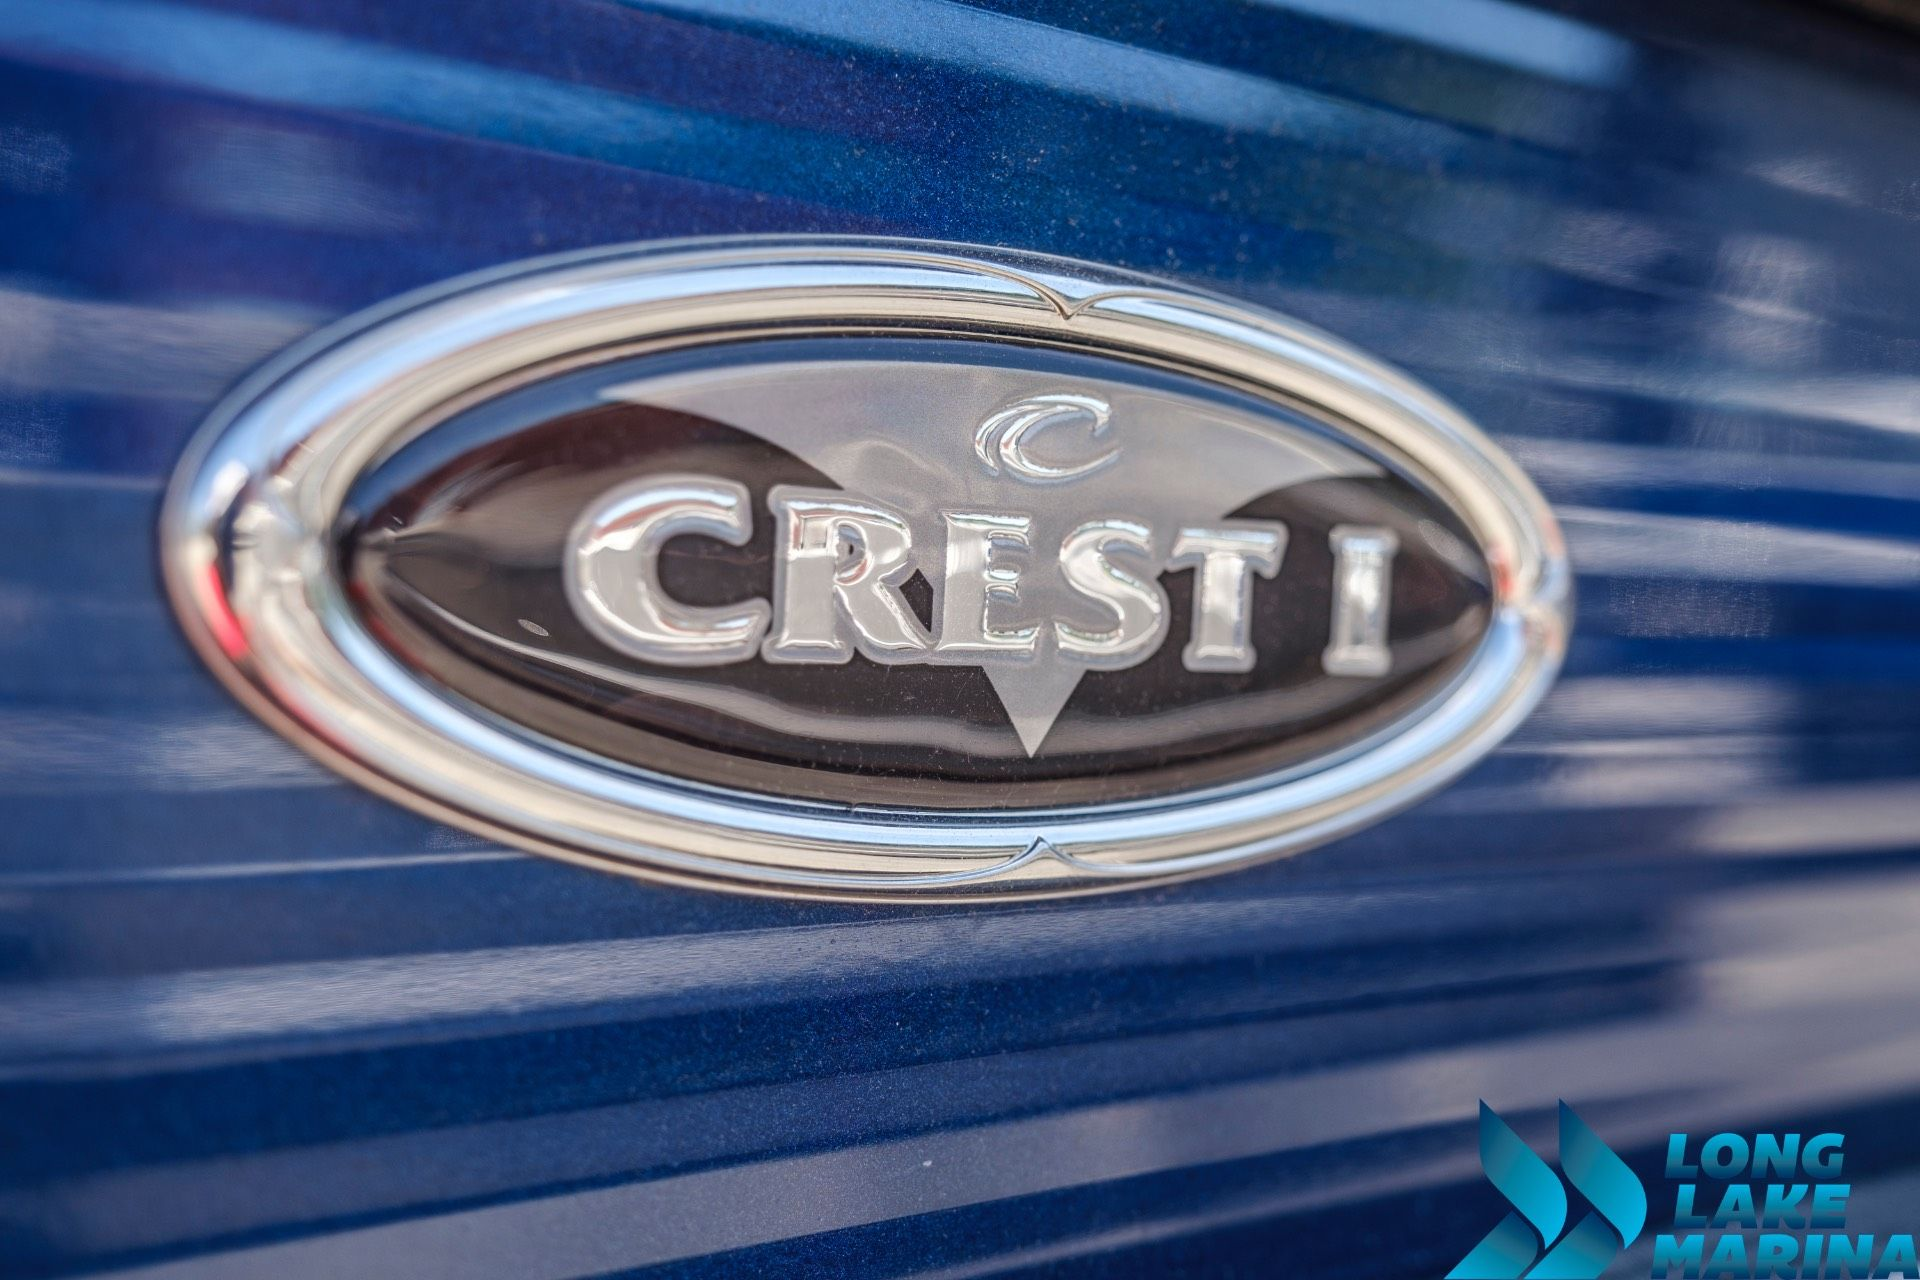 2017 Crest Crest I 200 in Naples, Maine